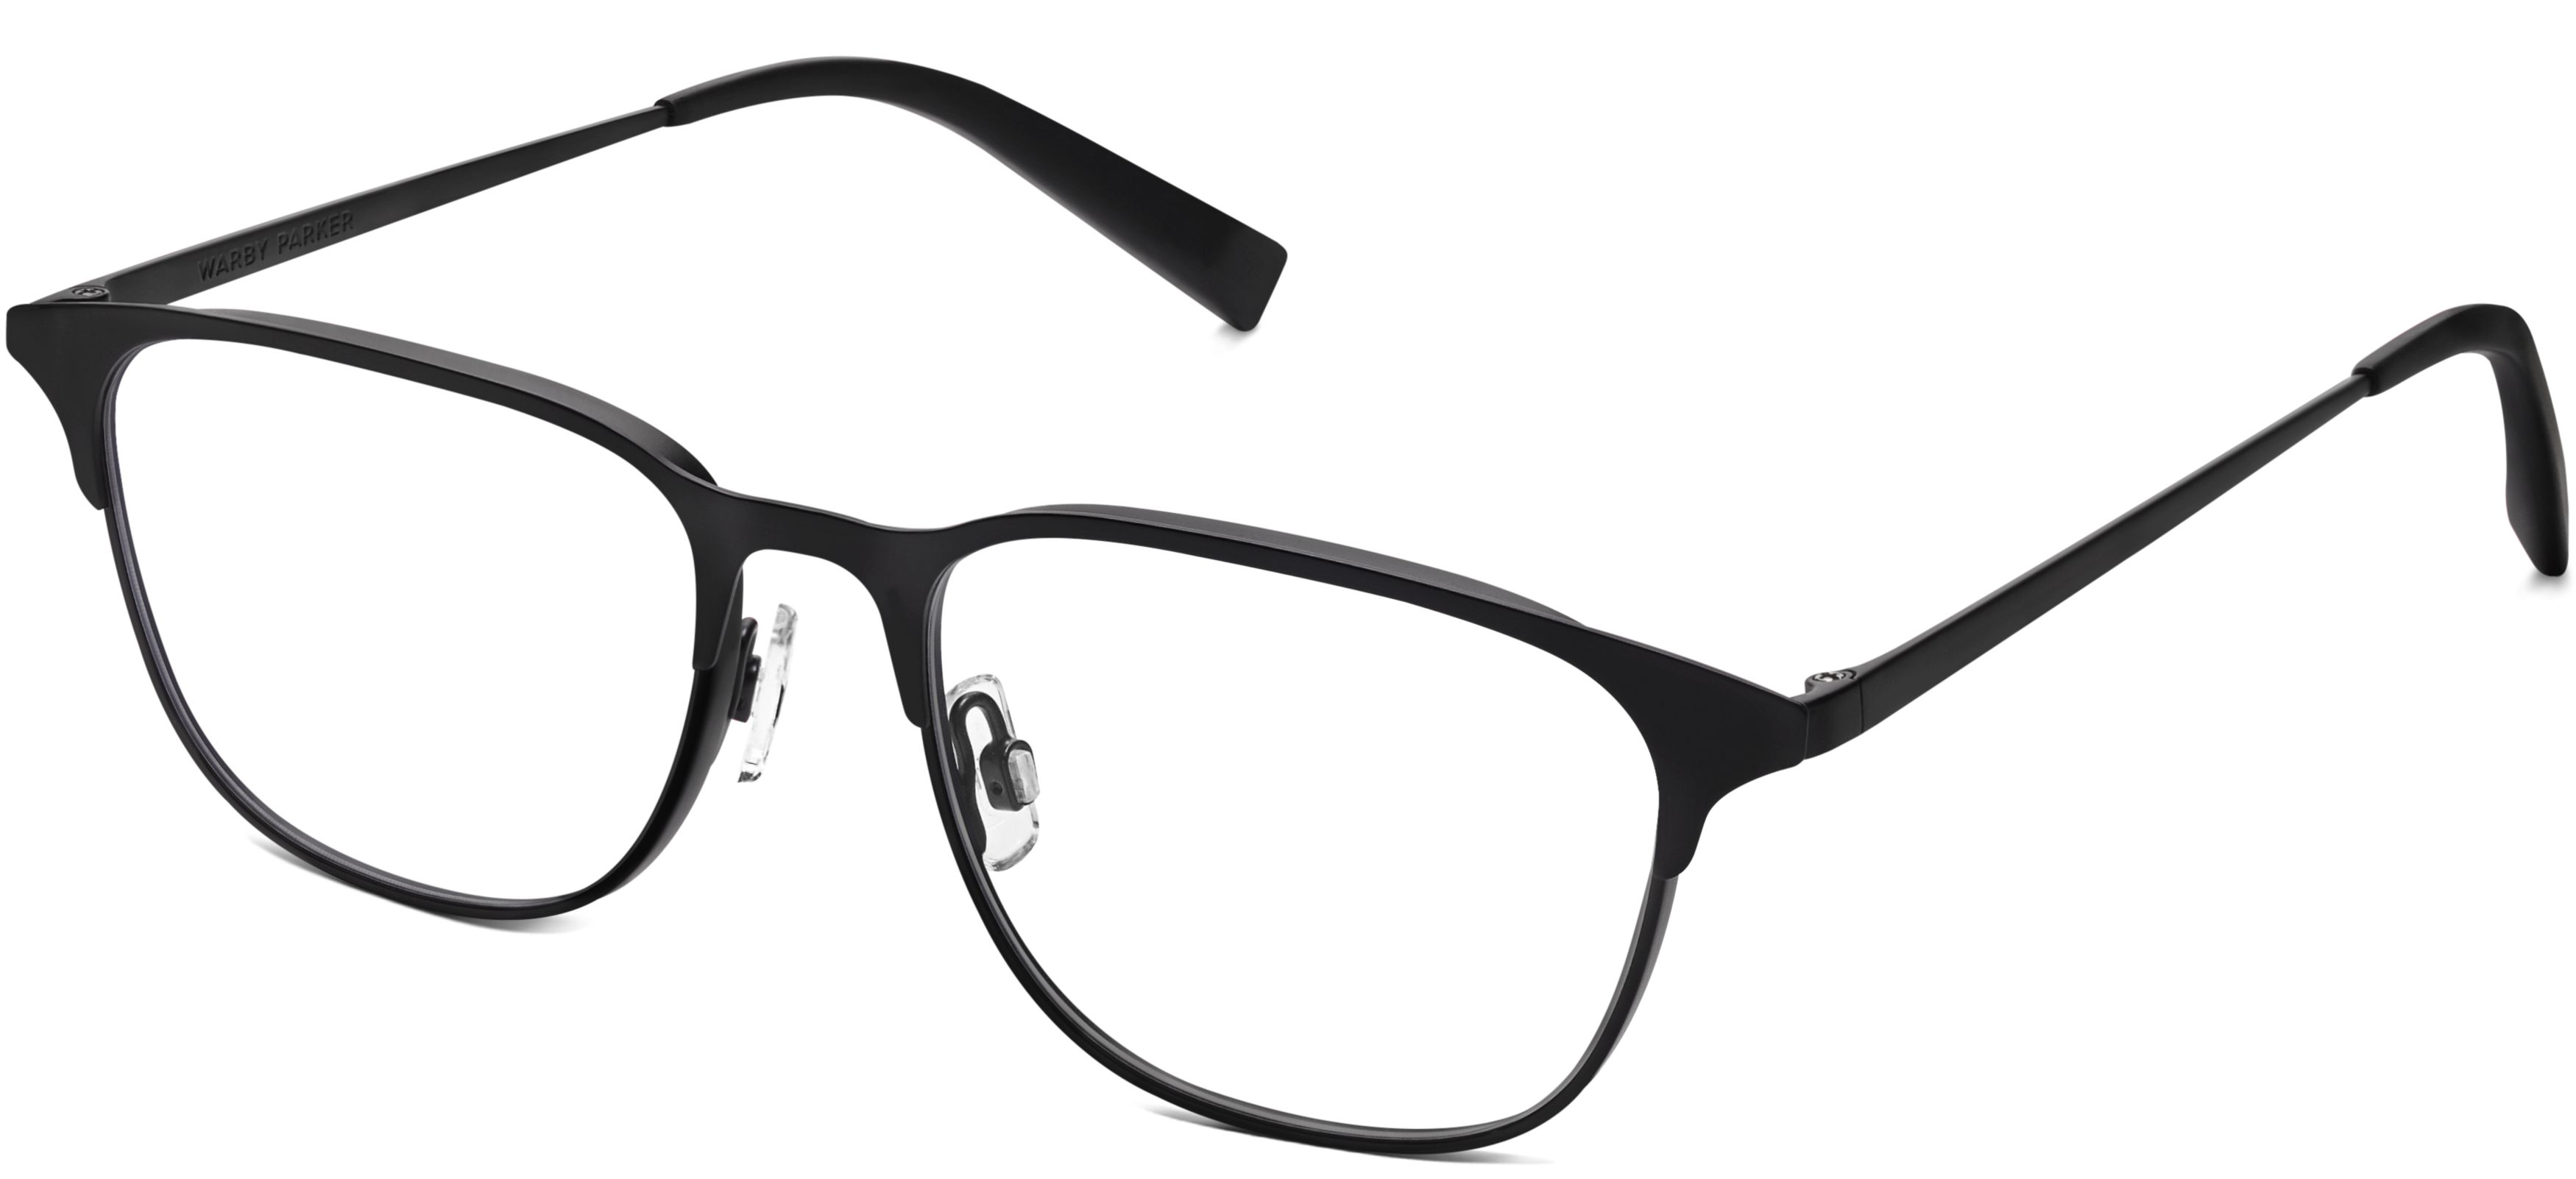 cc57f4fdb8 Campbell Eyeglasses in Black Ink for Women